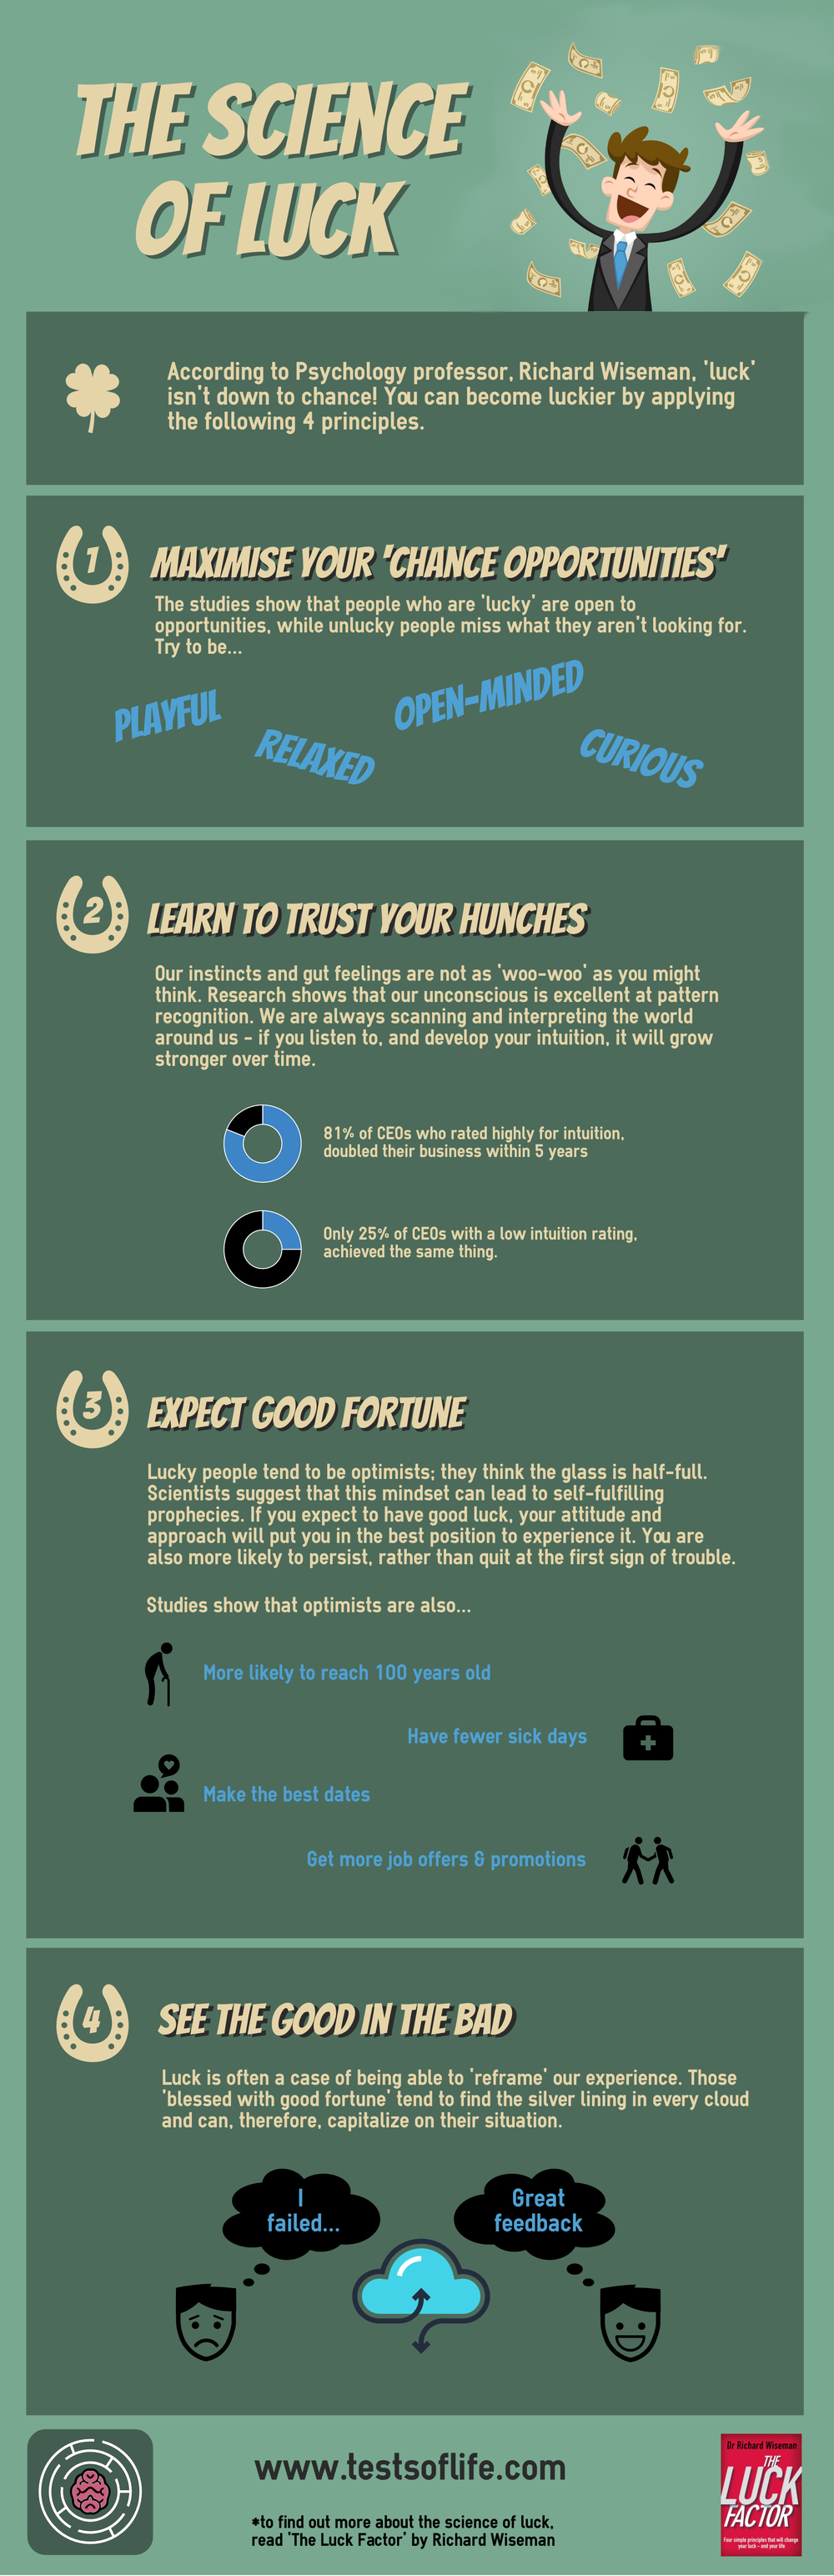 science of luck infographic.png